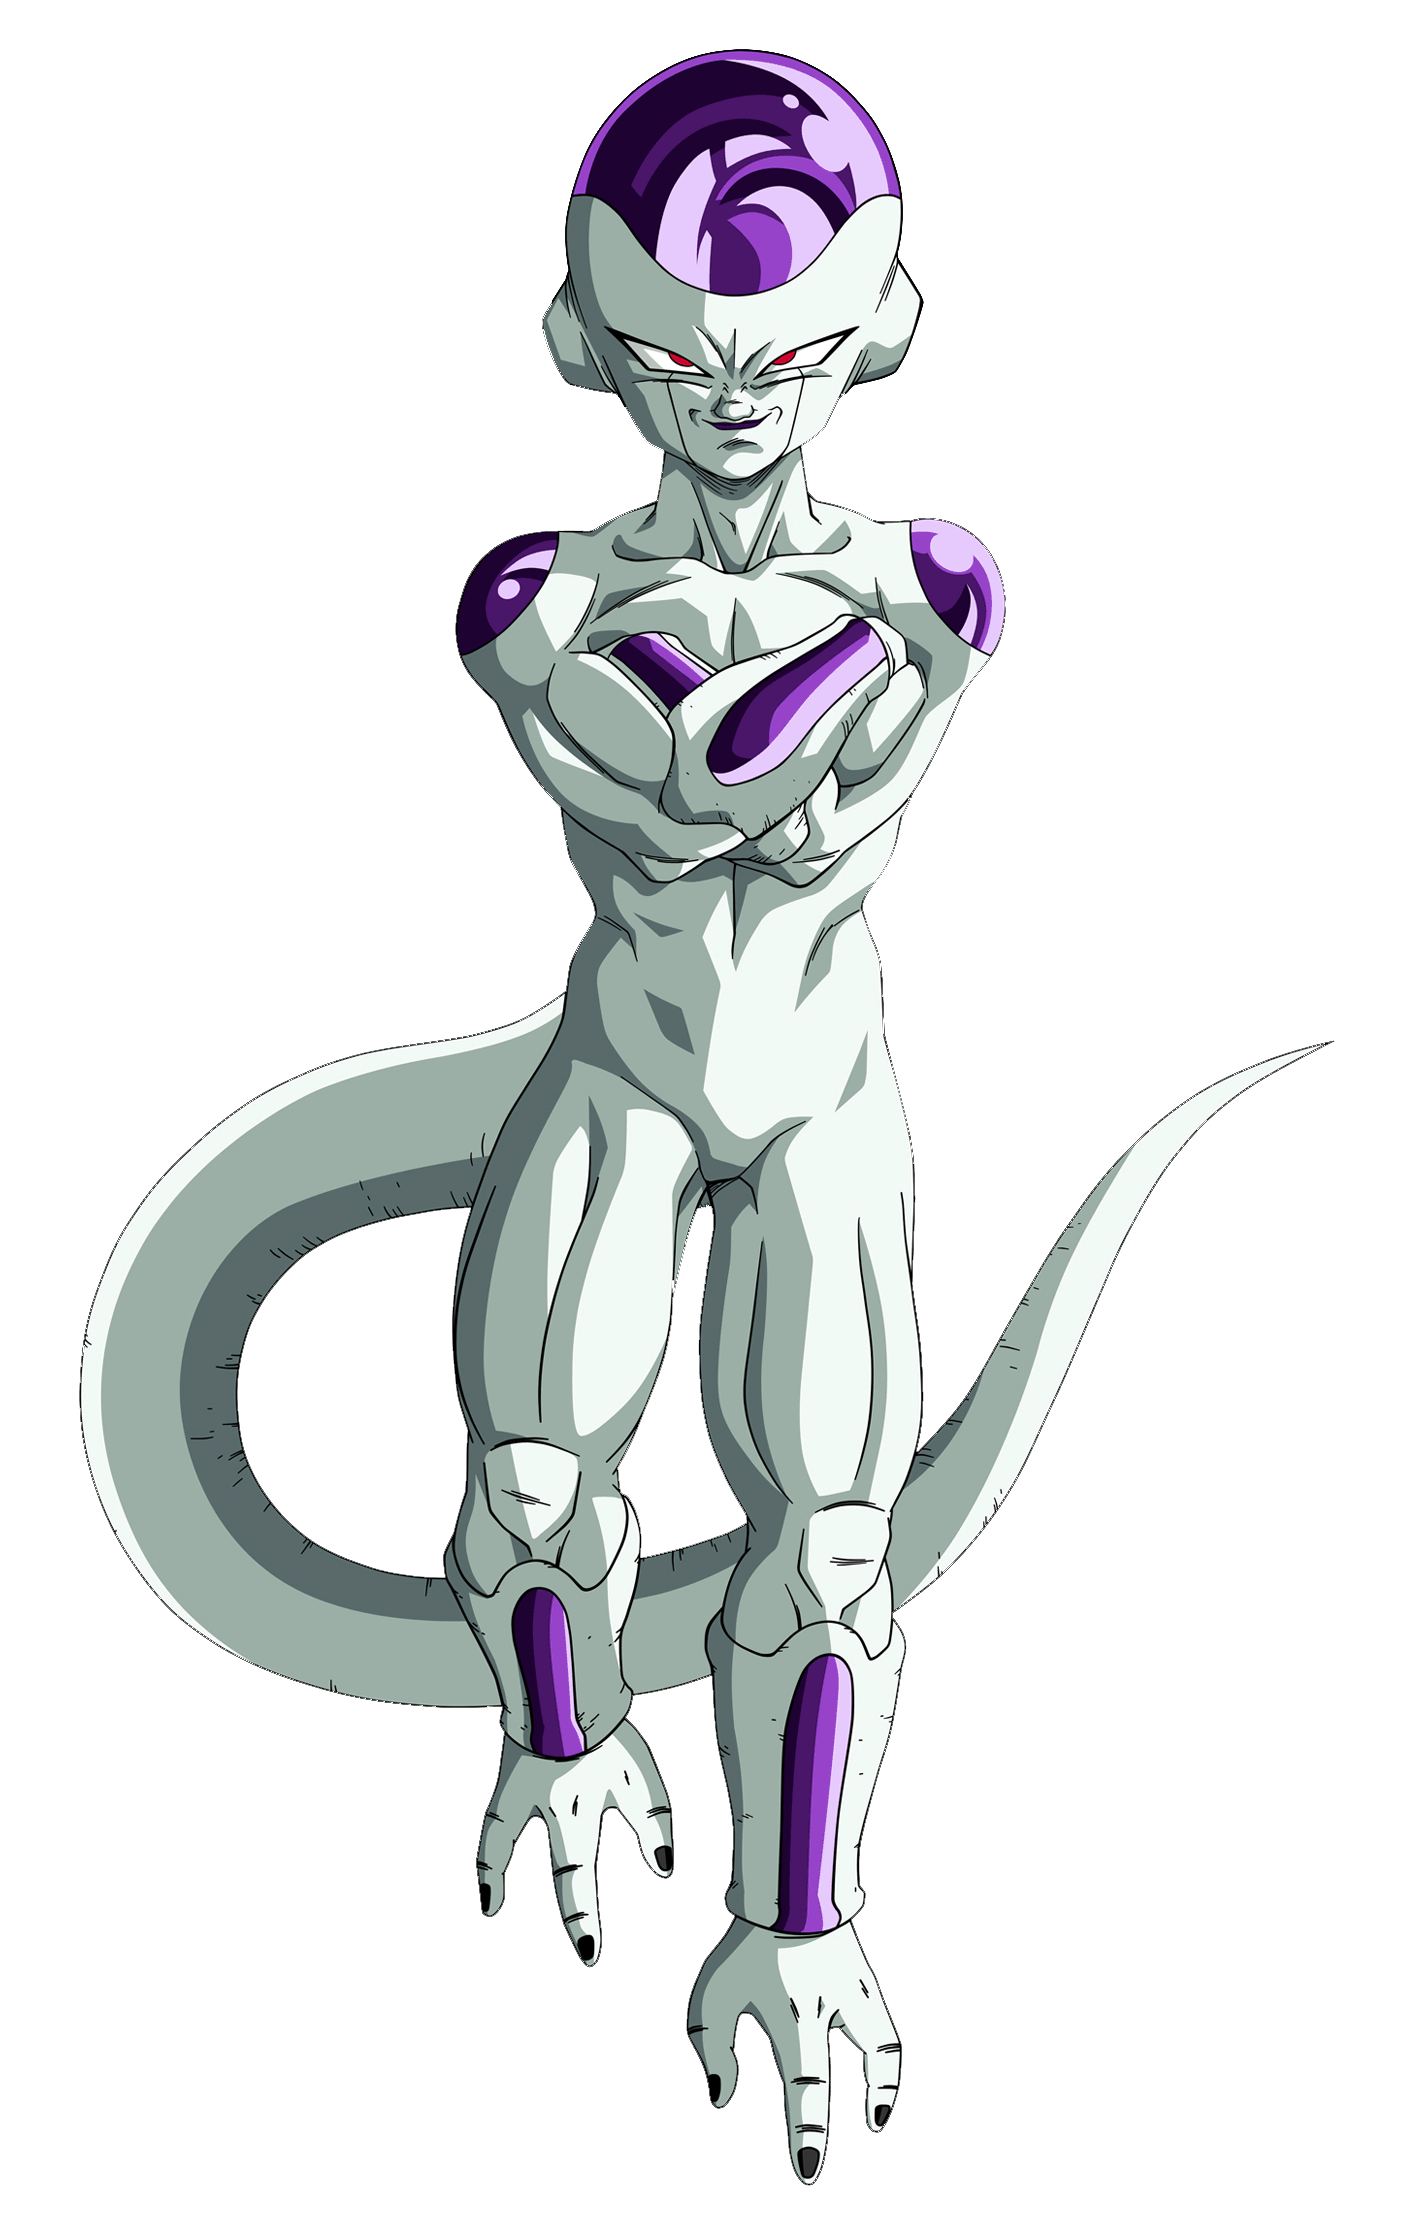 Frieza, the best villain of all time. Coolest looking too